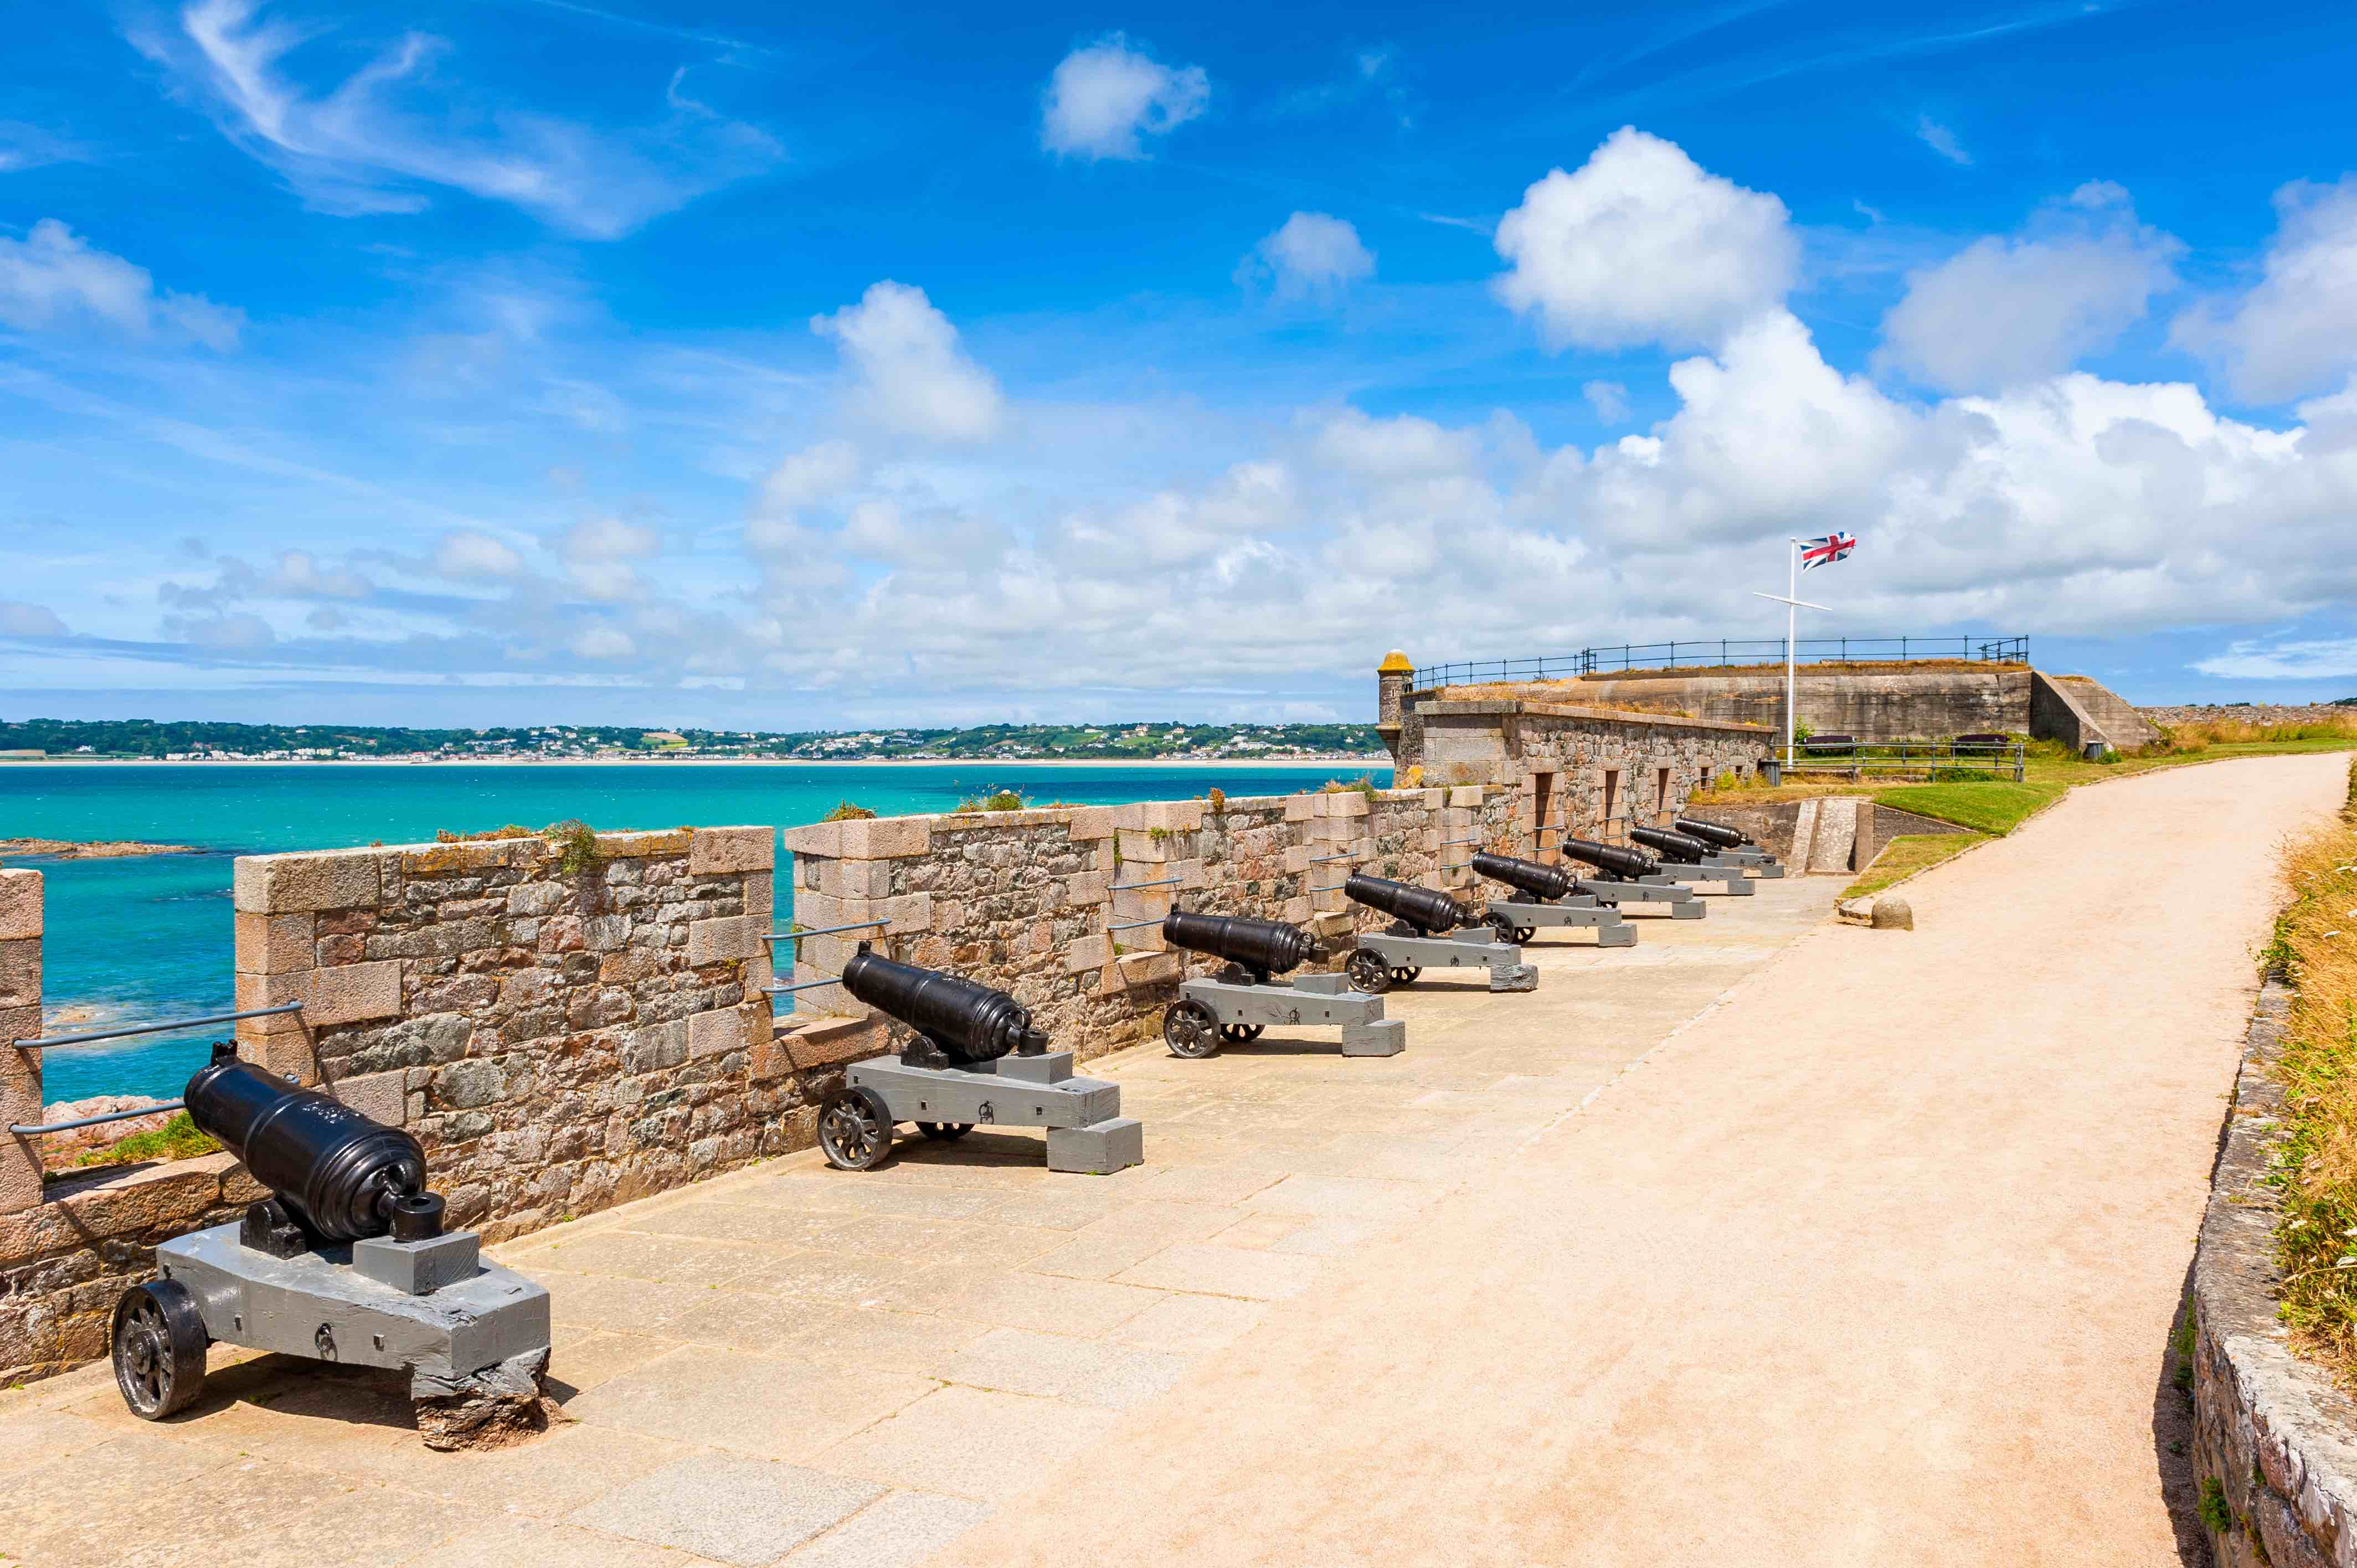 The historic cannons at Elizabeth Castle off the coast of St. Helier in Jersey.